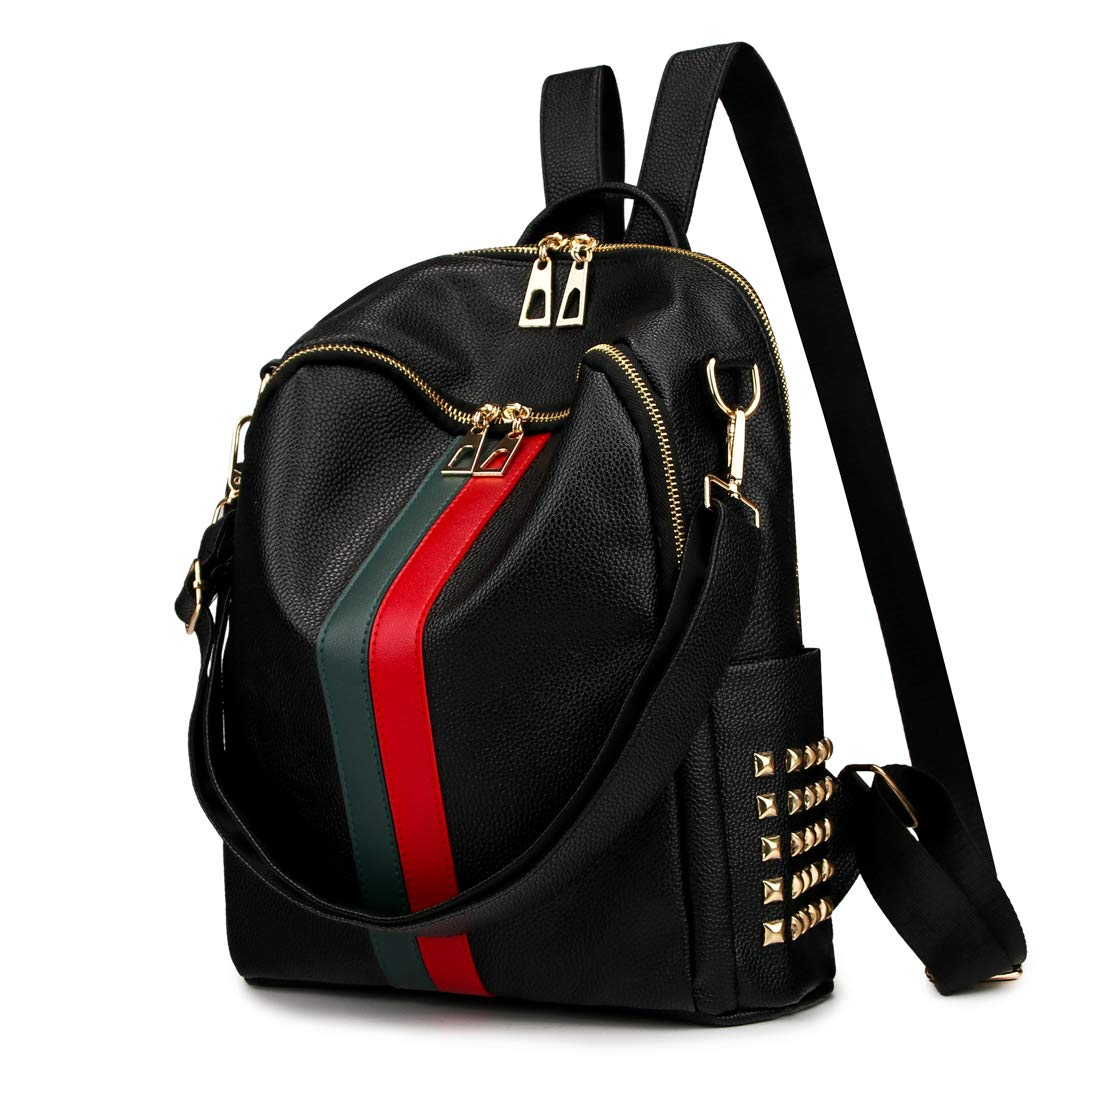 28d88dbafb Mynos Backpack Bag Women Mini Rucksack Travel Bookbag For Girls Backpack  Leather Bag Ladies Purse And Handbags (Black)  Amazon.co.uk  Shoes   Bags